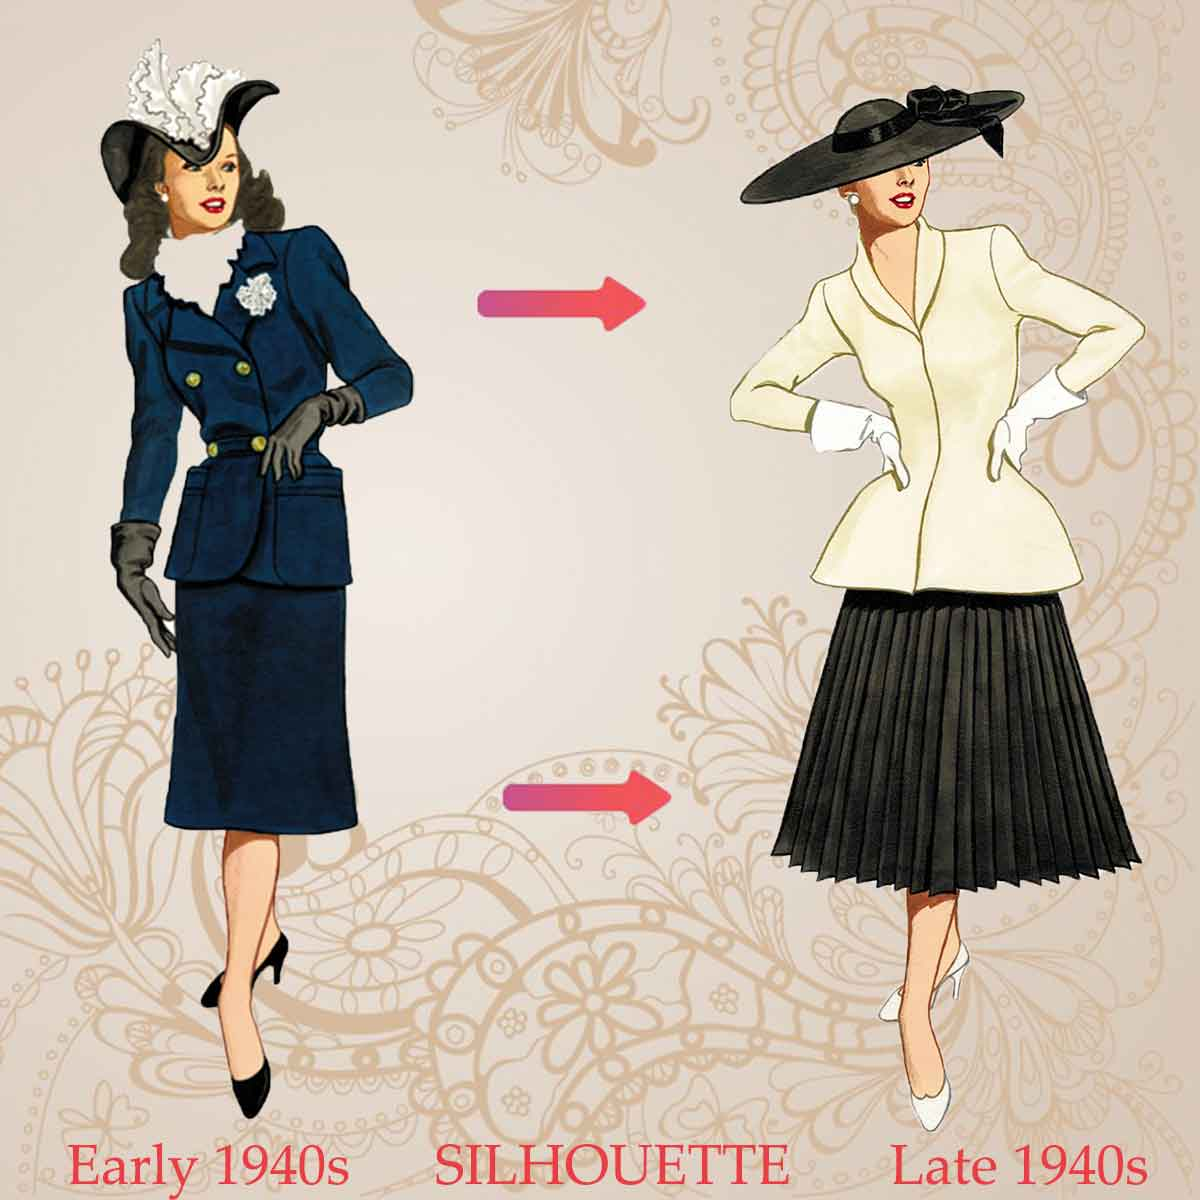 The 1940s fashion silhouette